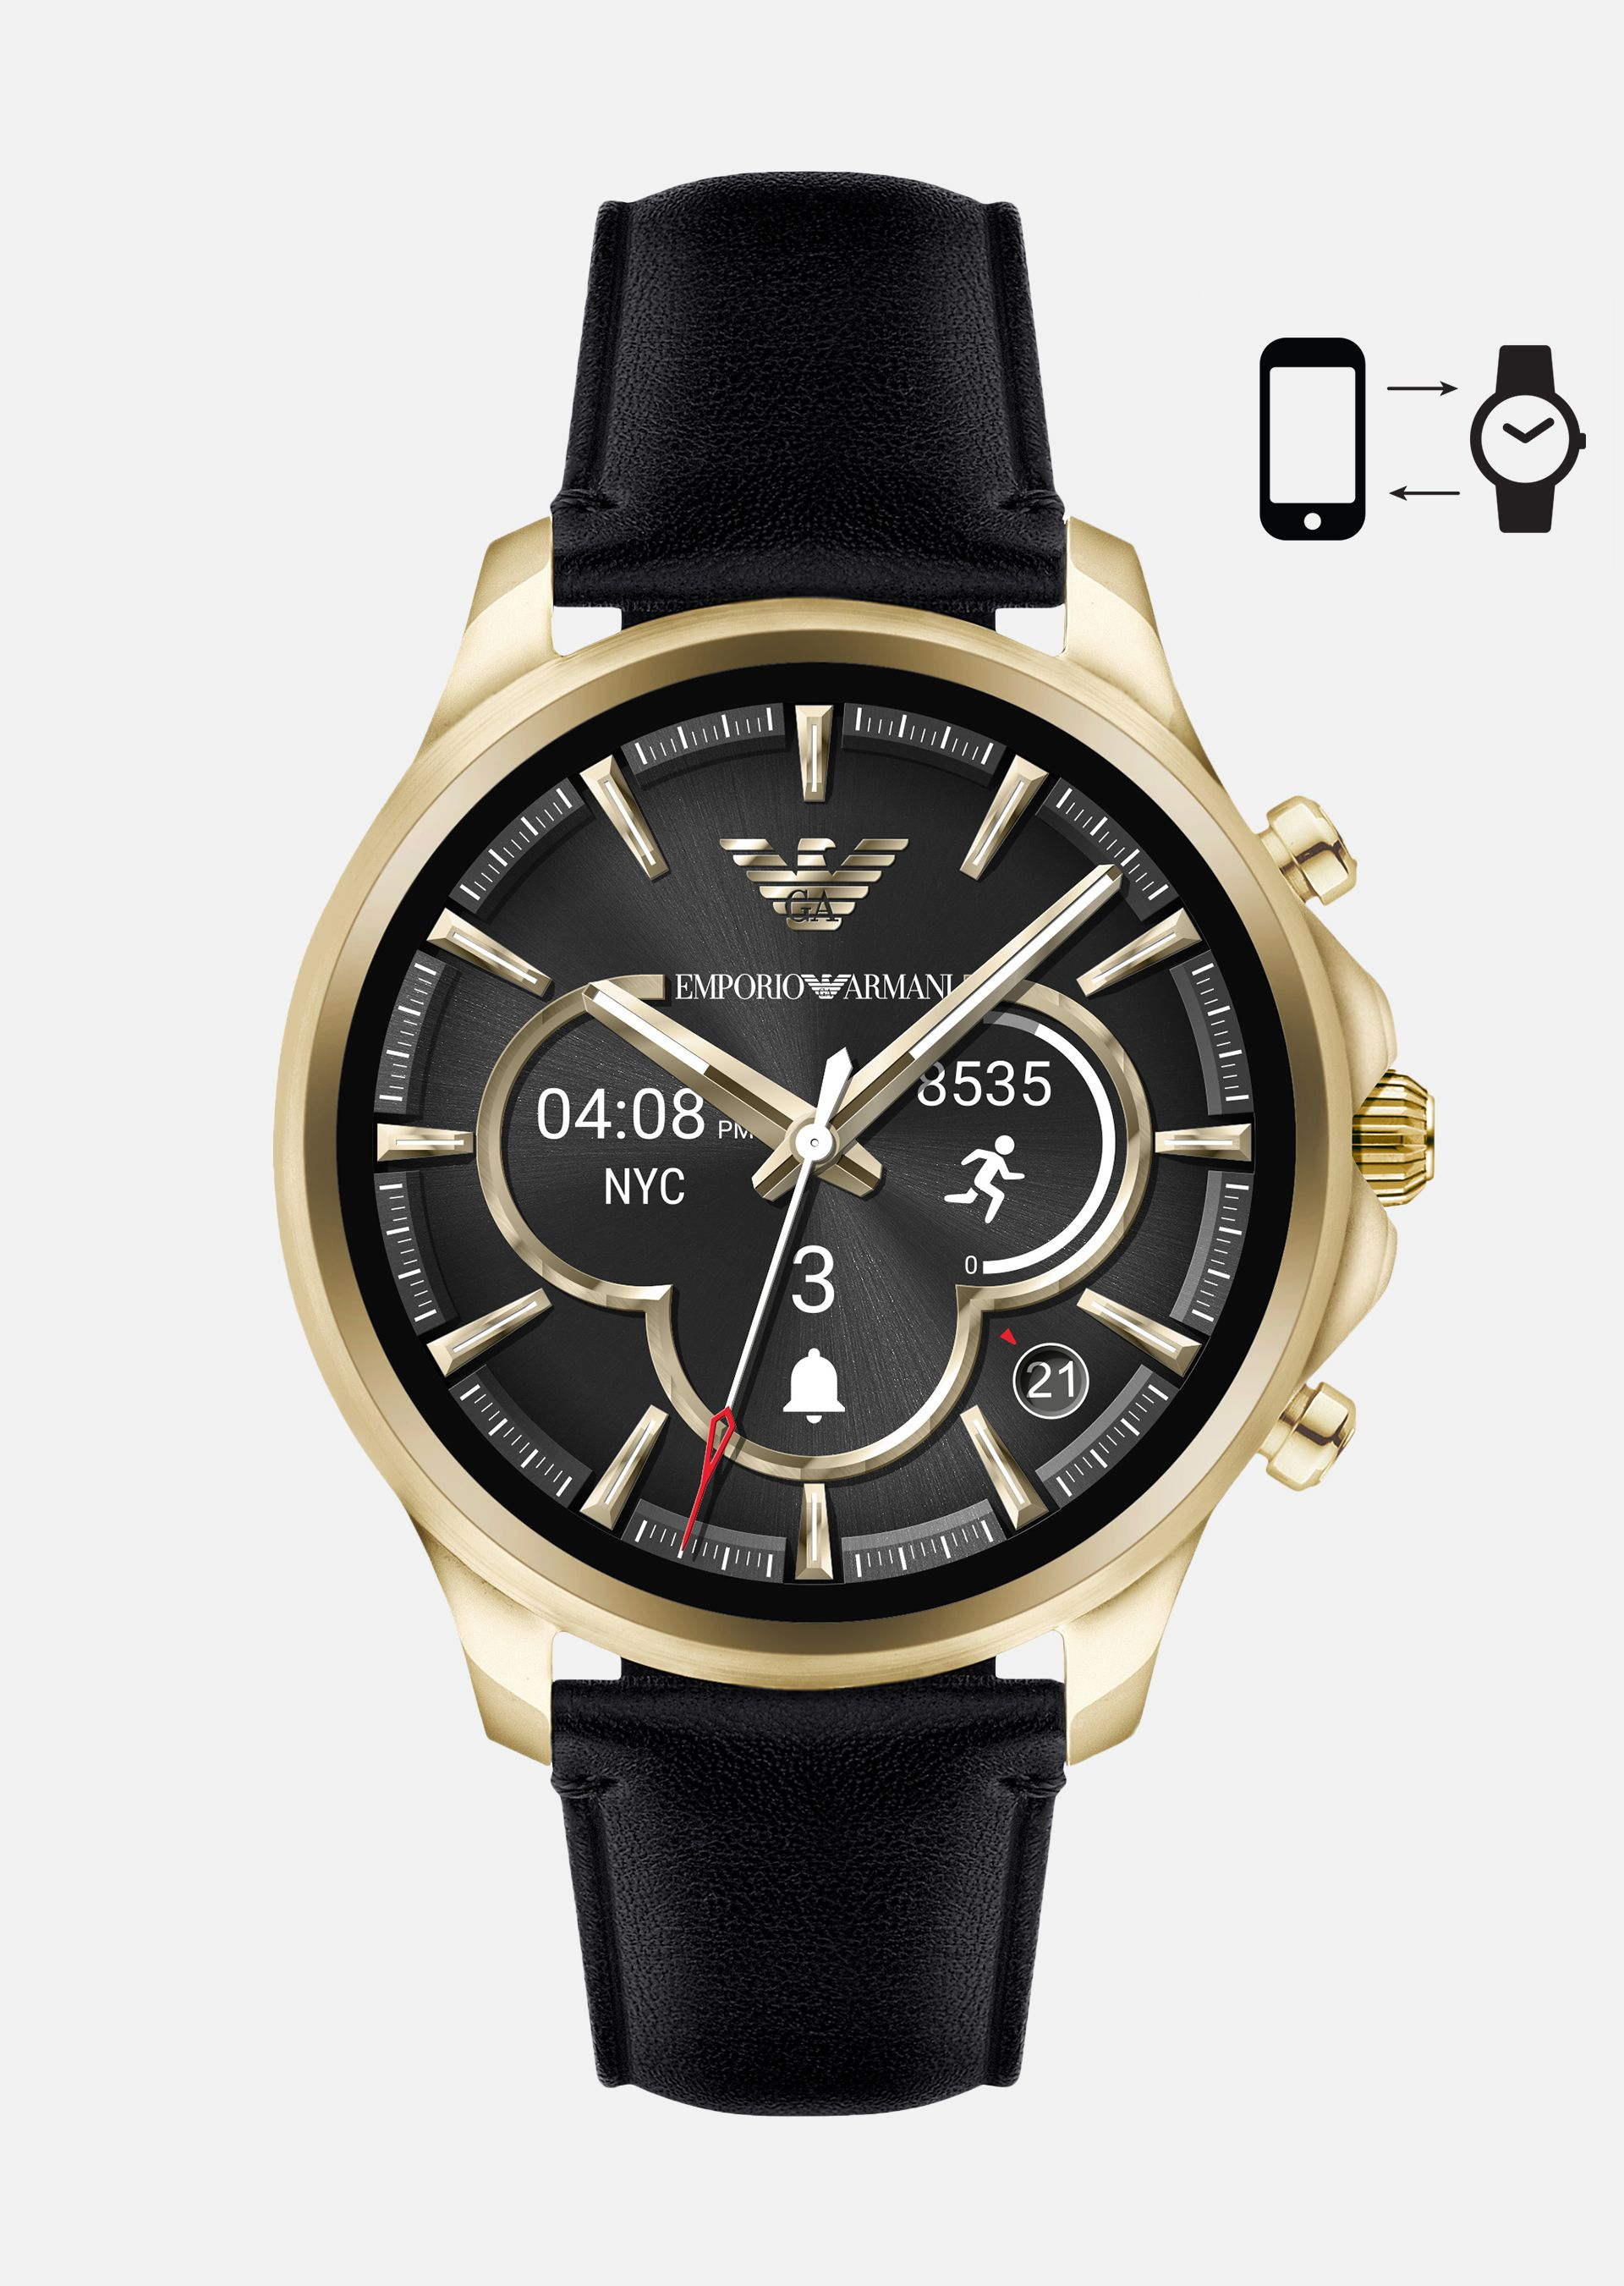 EMPORIO ARMANI SMARTWATCH TOUCHSCREEN 5004 Connected U f